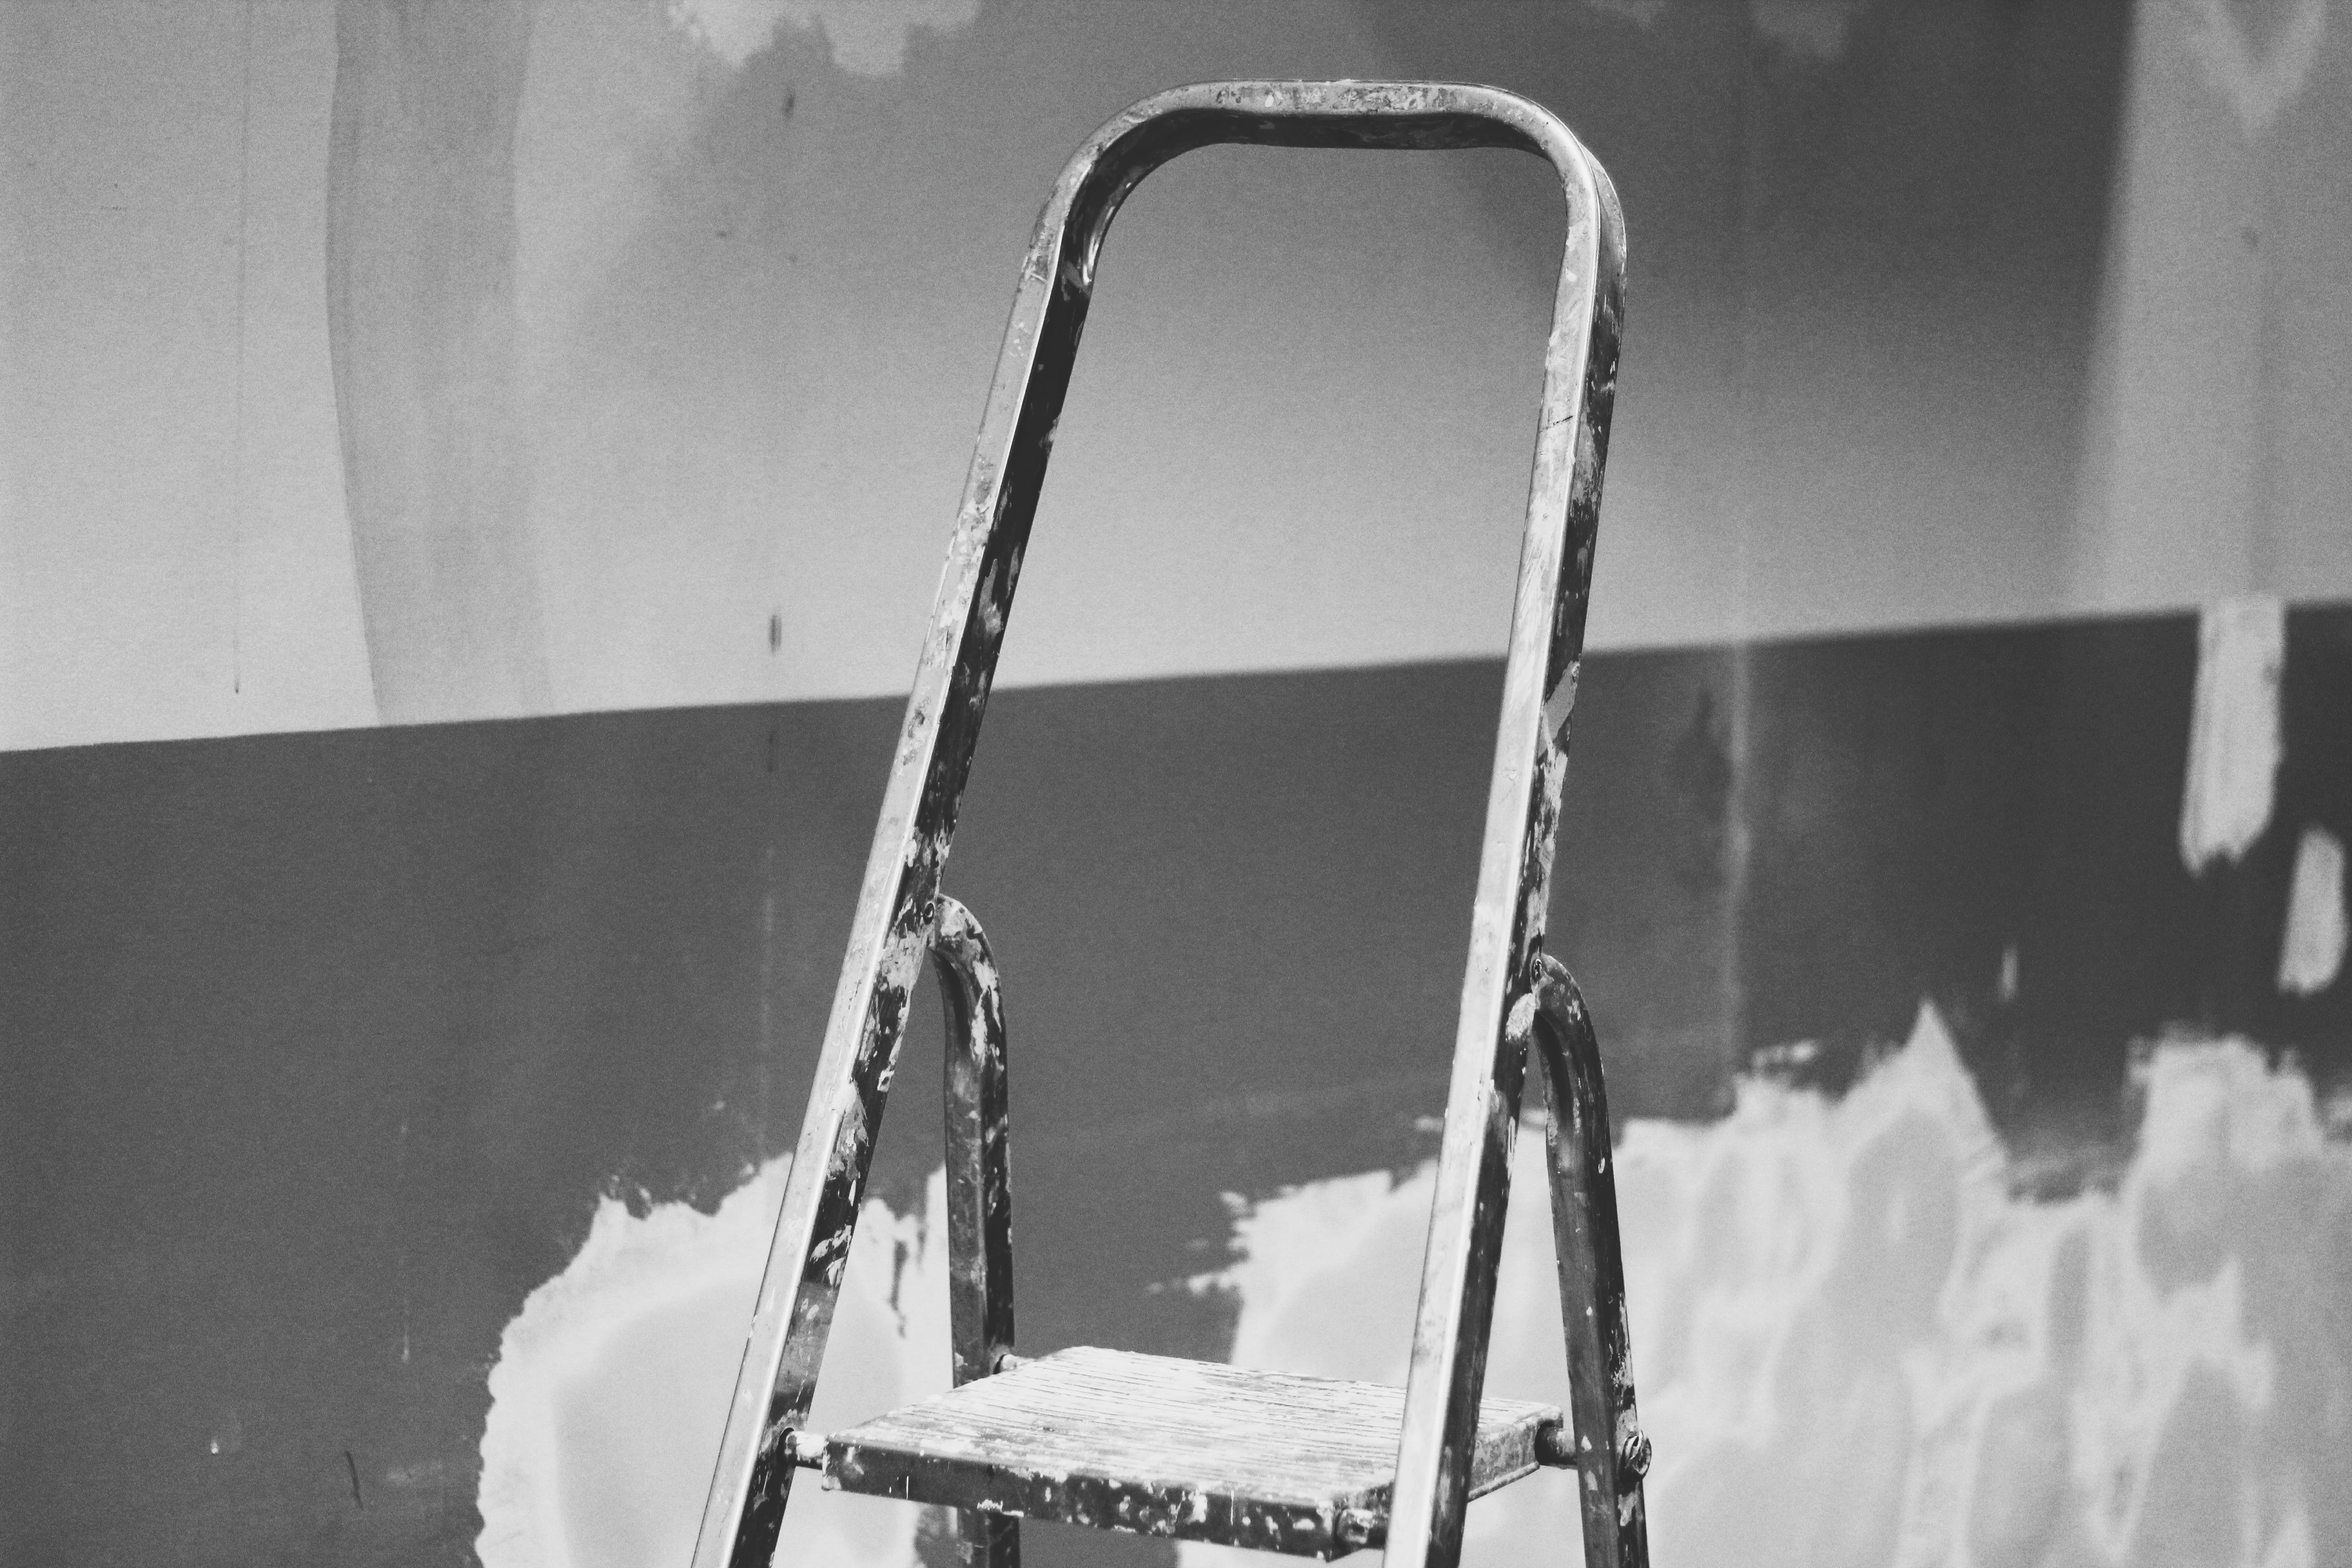 Black and Gray Step Ladder in Front of Wall